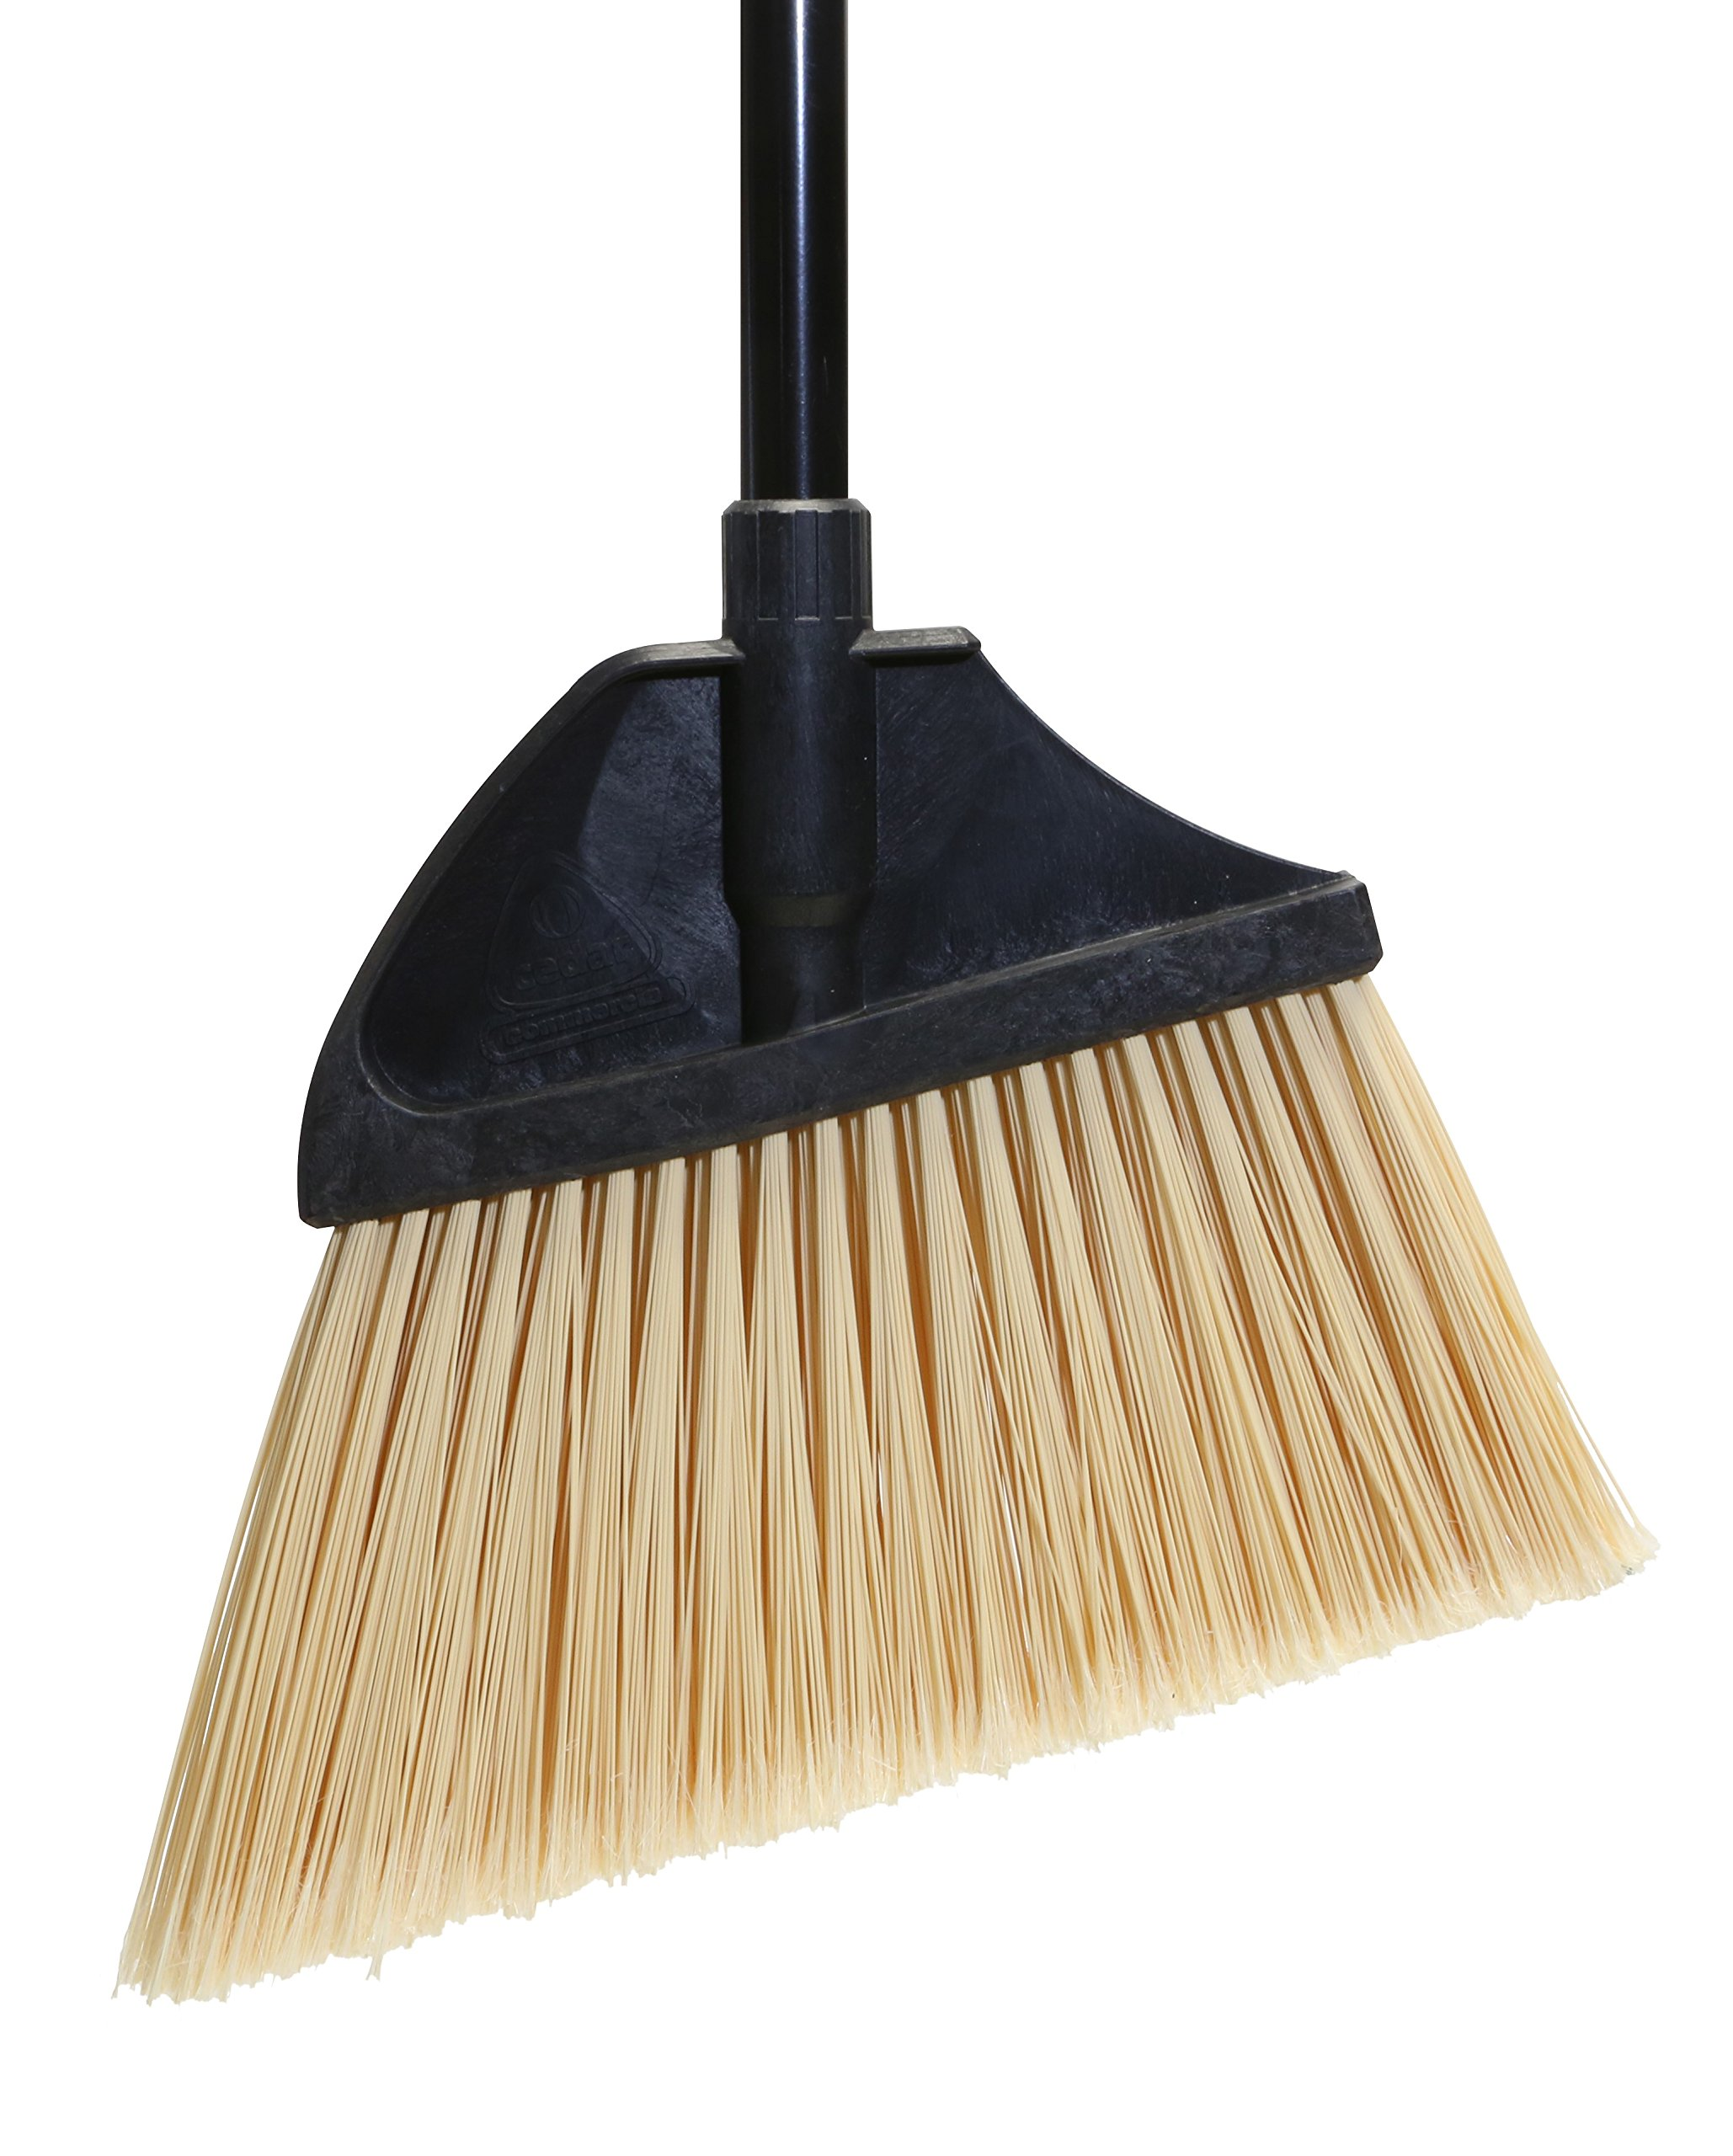 O'Cedar Commercial 91351 MaxiPlus Professional Angle Broom, Metal Handle, Flagged Bristles (Pack of 4)